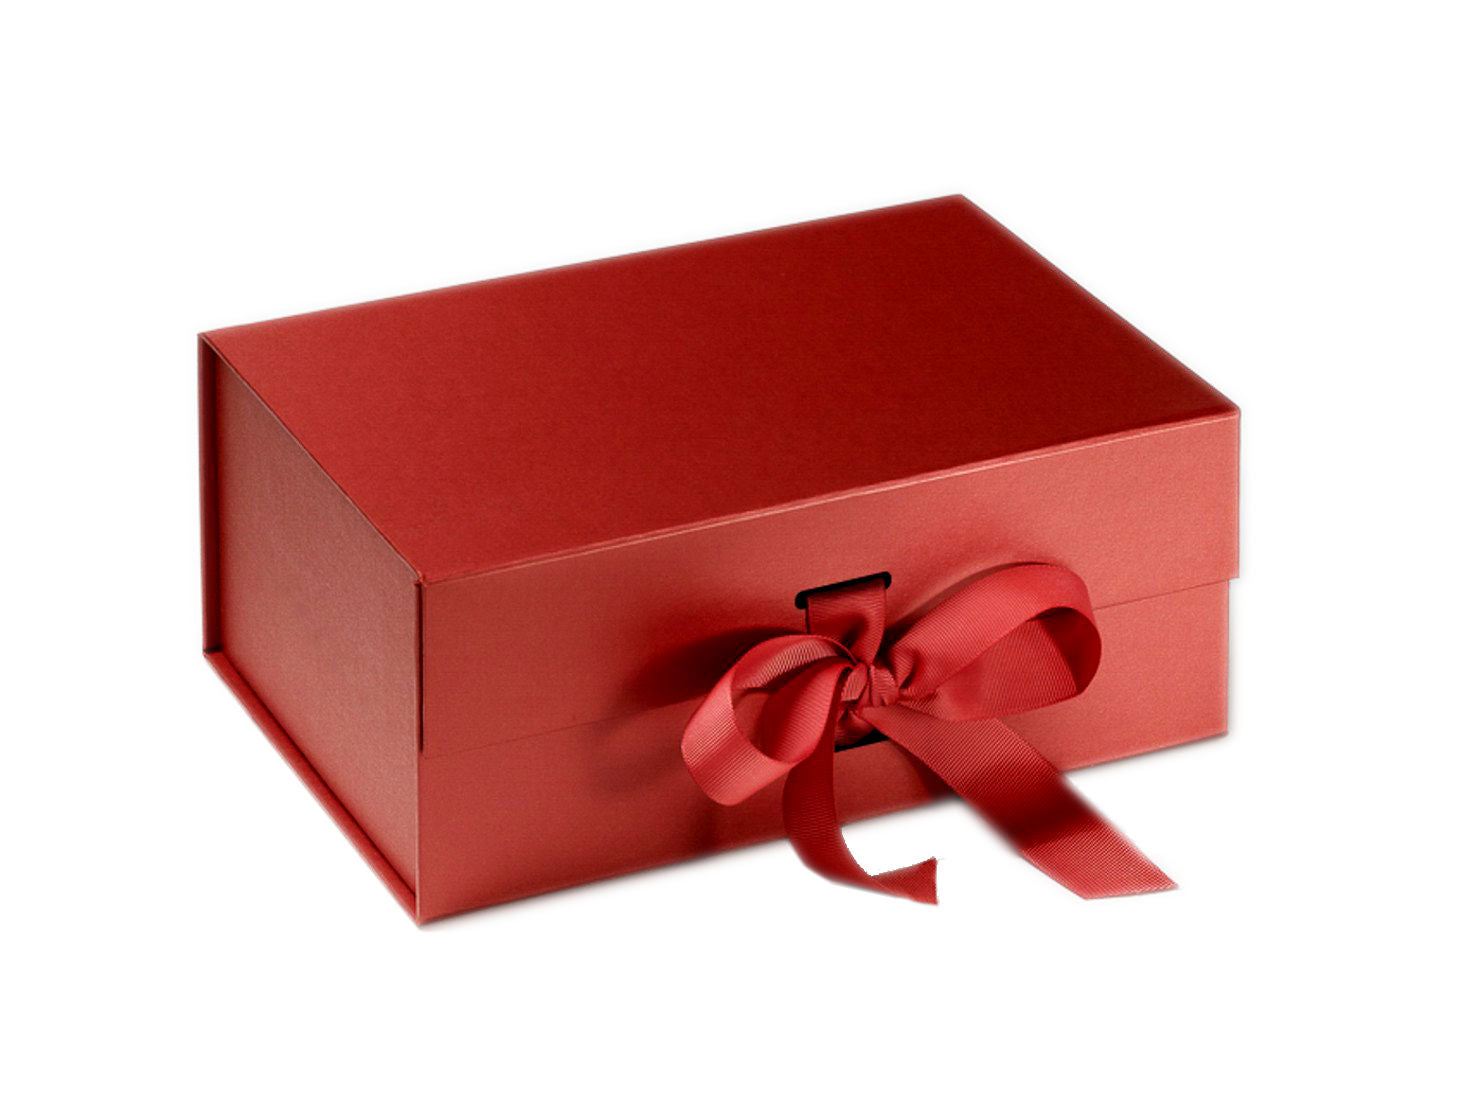 Create Your Own Christmas Box. Luxurious Red Gift Box with Grosgrain Ribbon